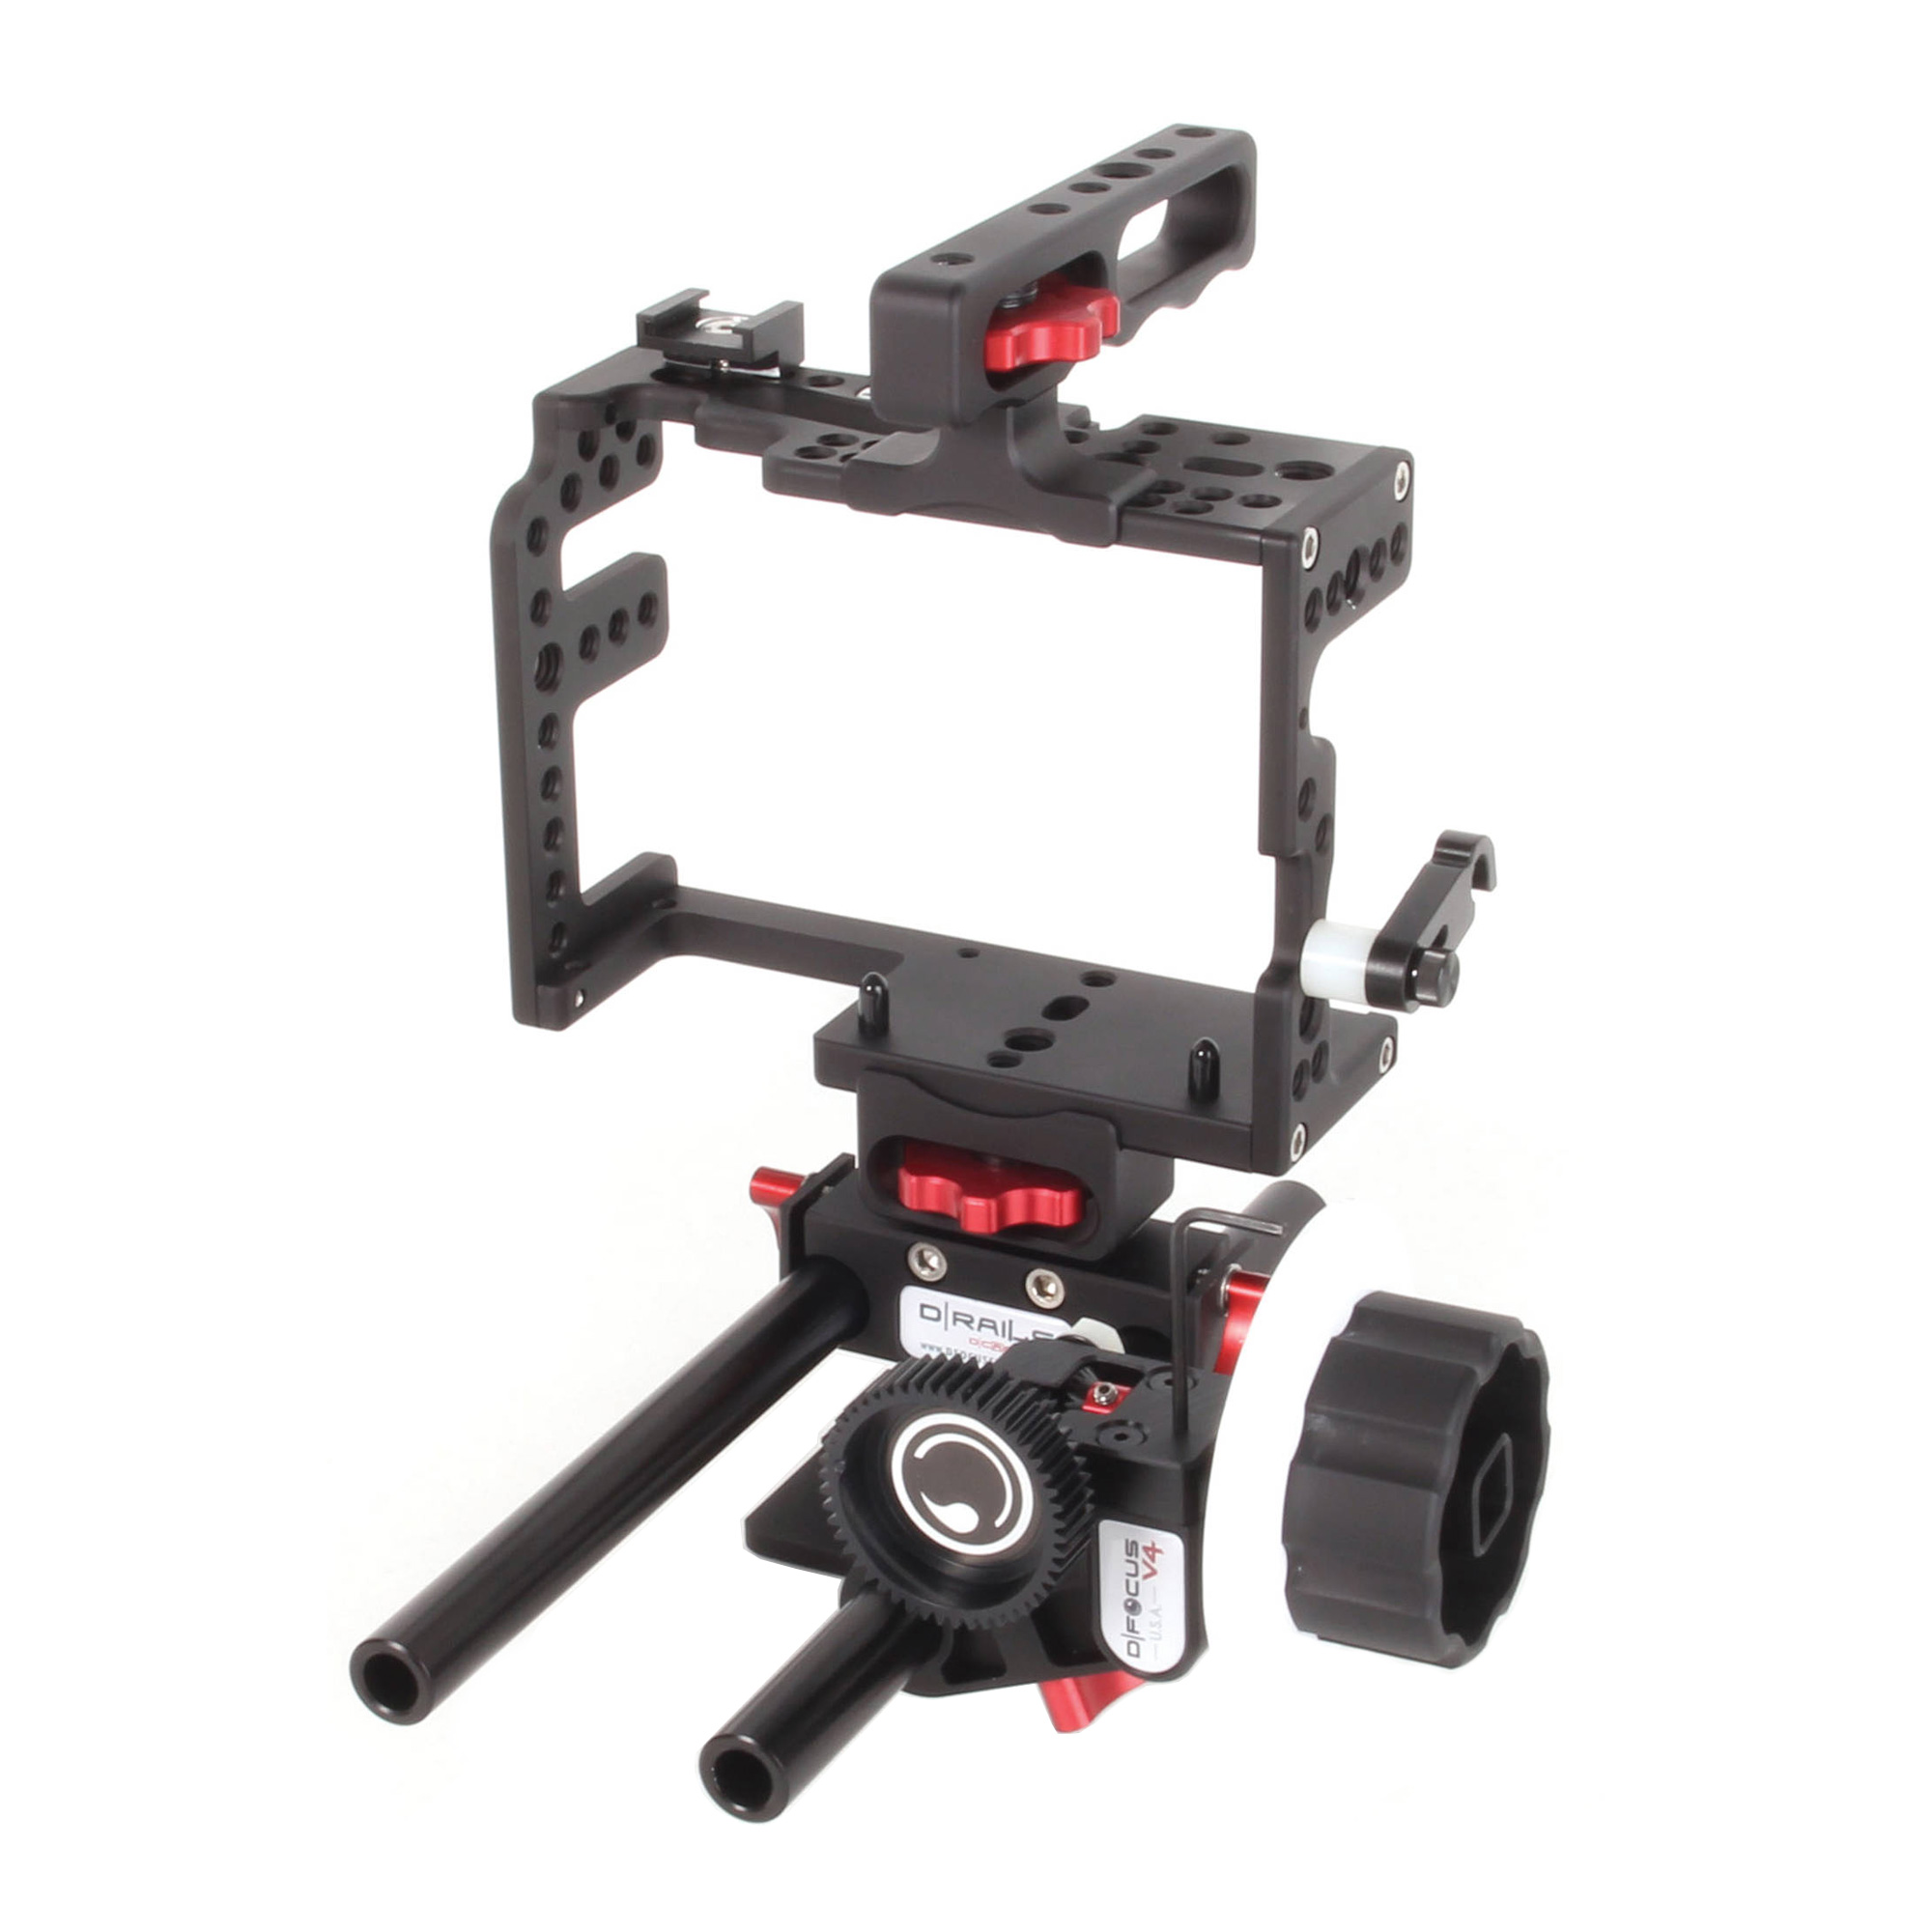 DCage Bundle for Panasonic GH4 Camera